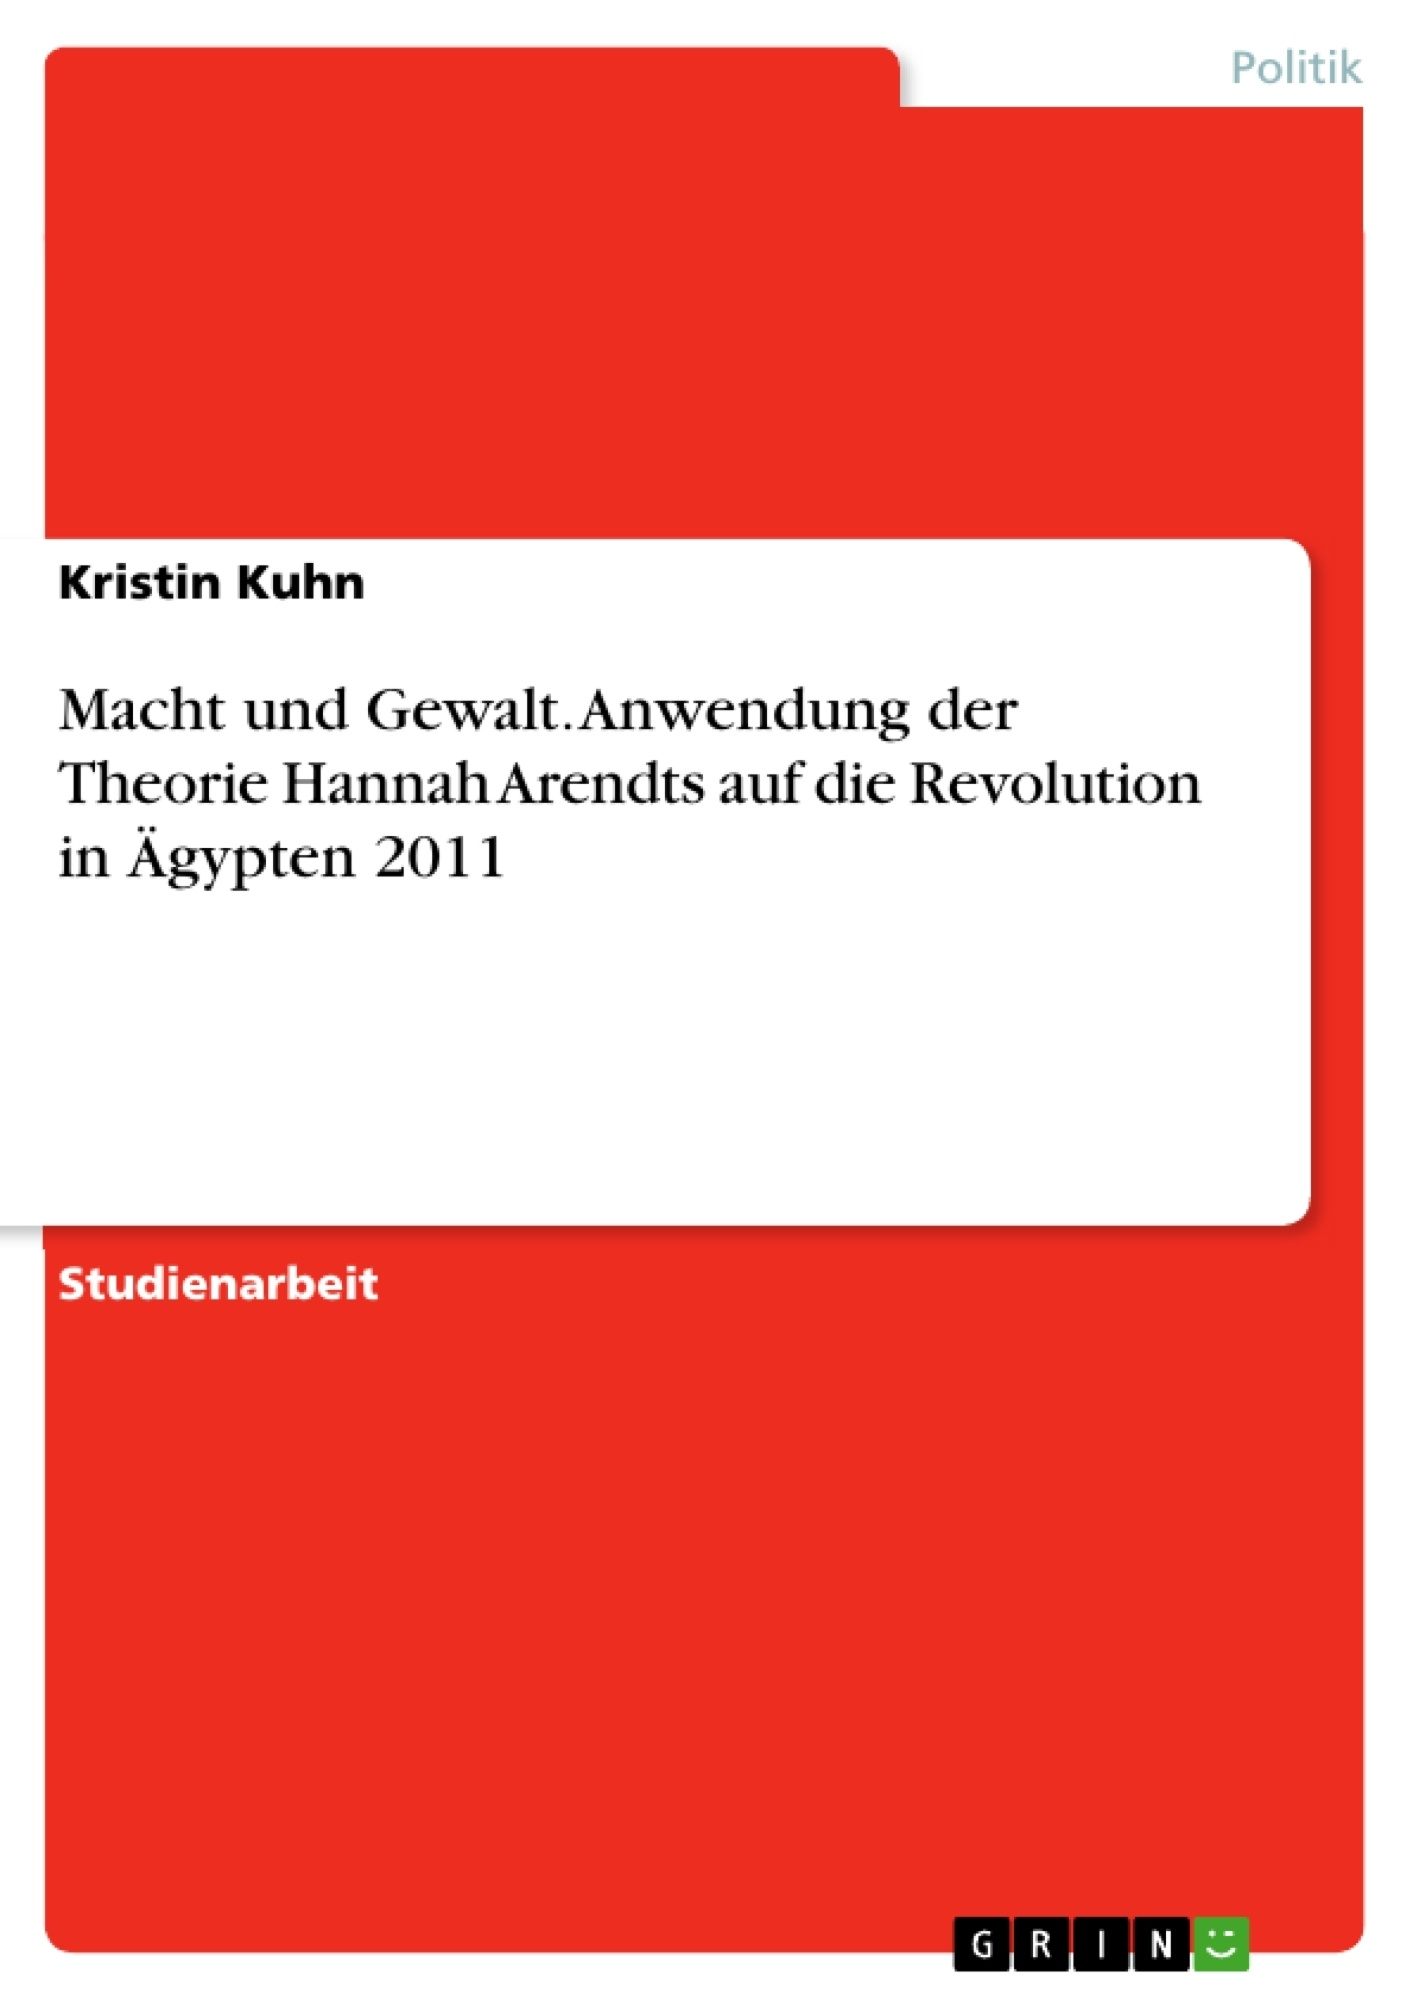 hannah arendts zur zeit politische essays Hannah arendts zur zeit politische essays - modernistic 4 days ago top 100 college essays top 100 colleges for creative writing top 100 controversial essay topics.